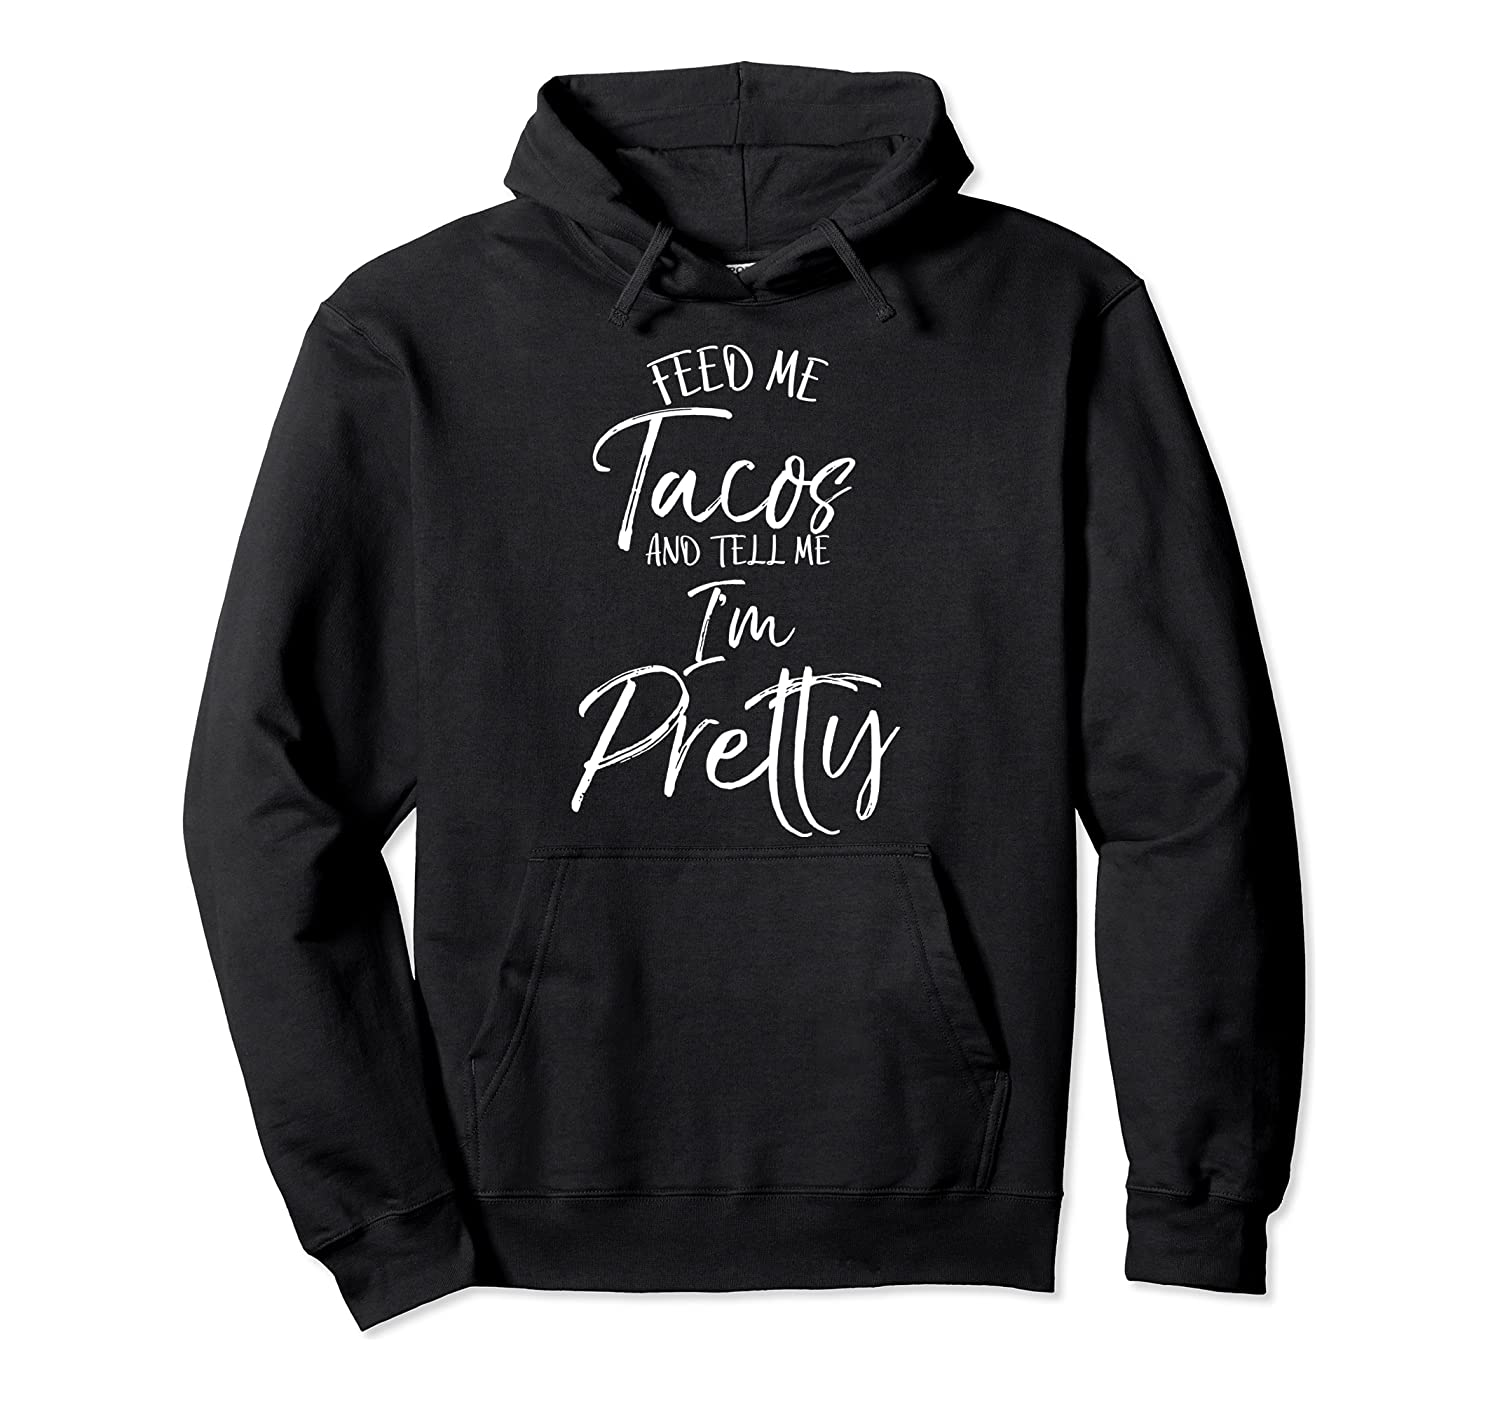 Funny Taco Gift Women's Feed Me Tacos and Tell Me I'm Pretty Pullover Hoodie